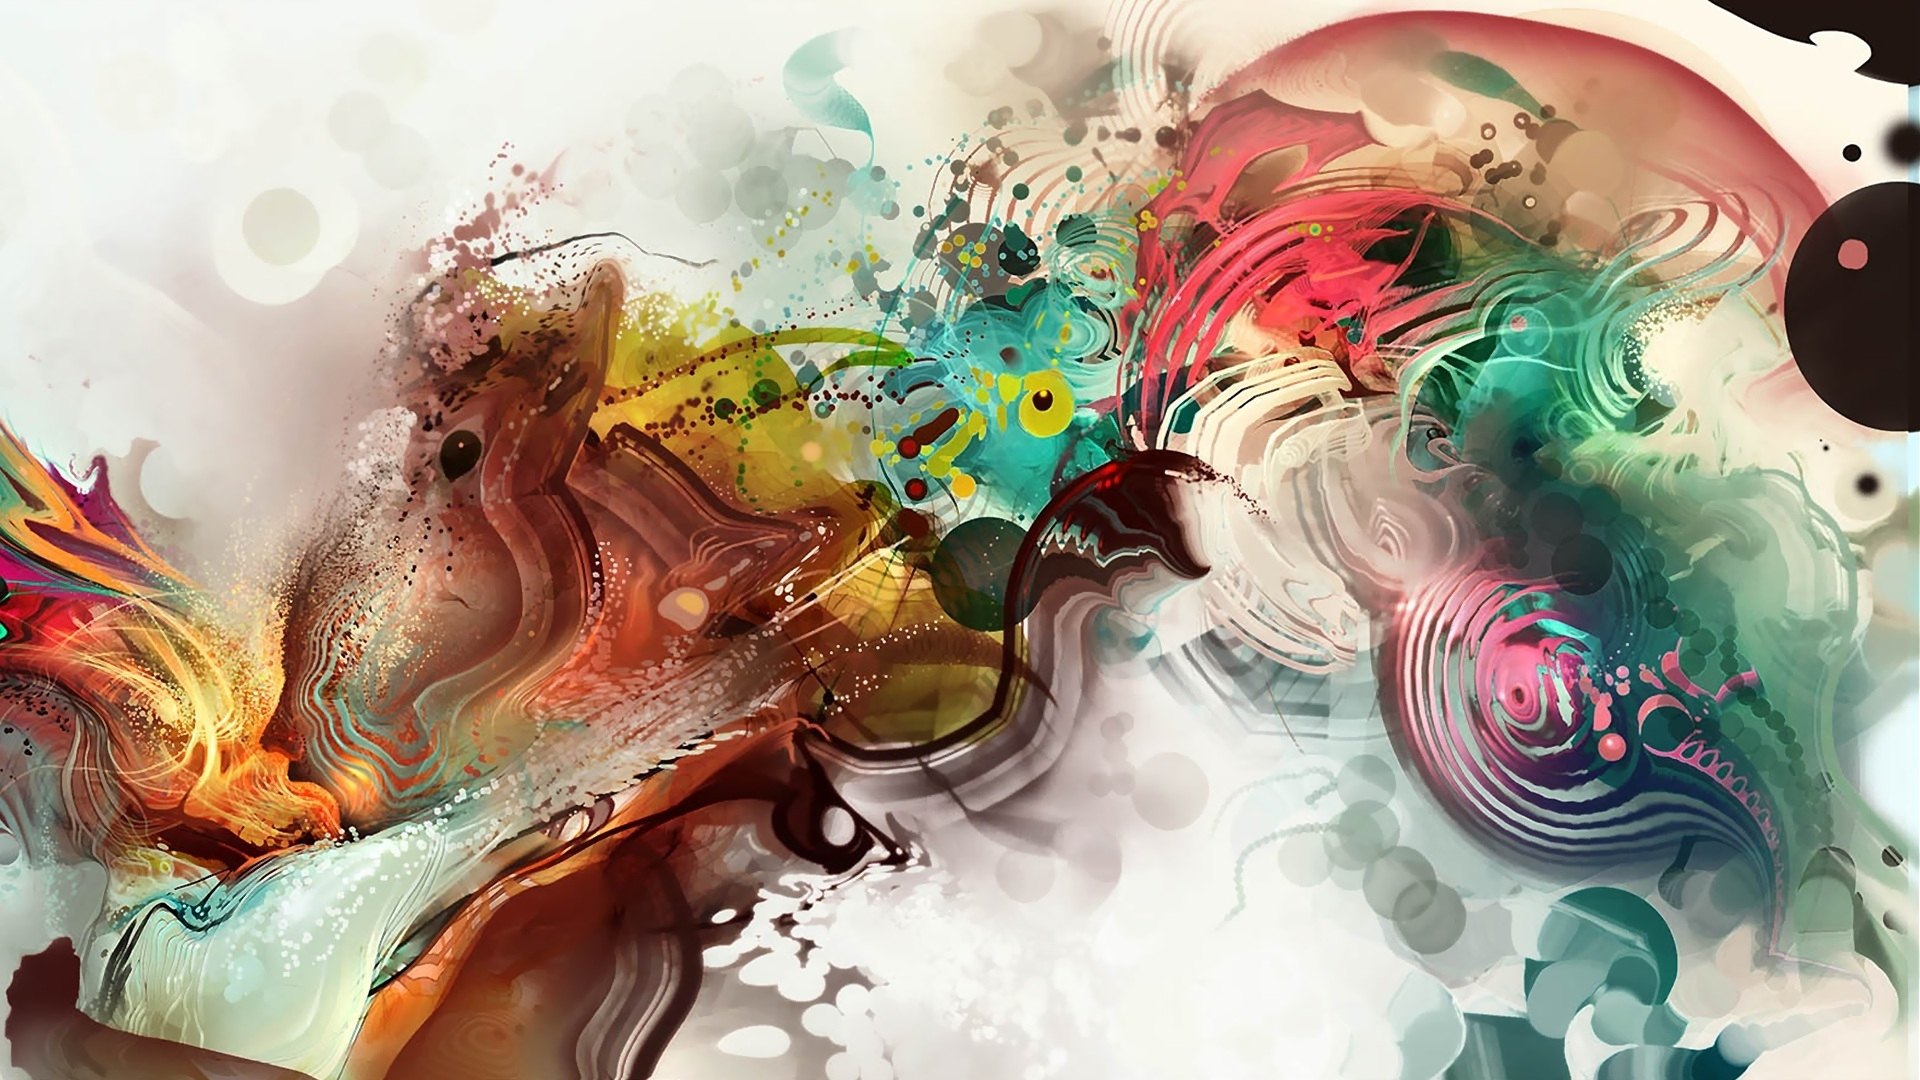 abstract full hd wallpaper and background image | 1920x1080 | id:202895